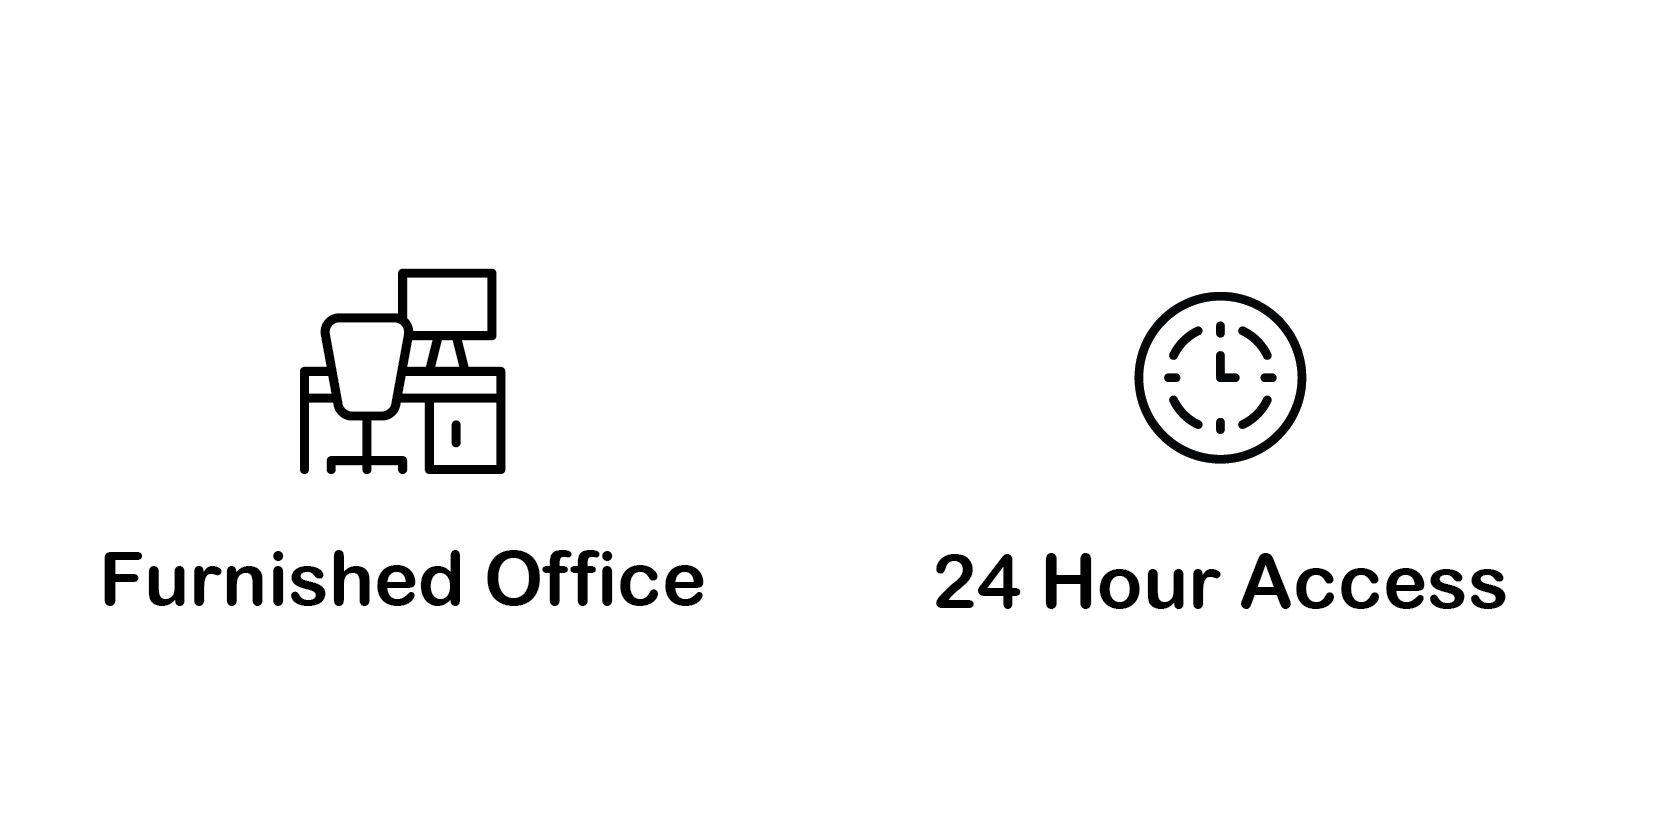 furnished offices and 24-hour access